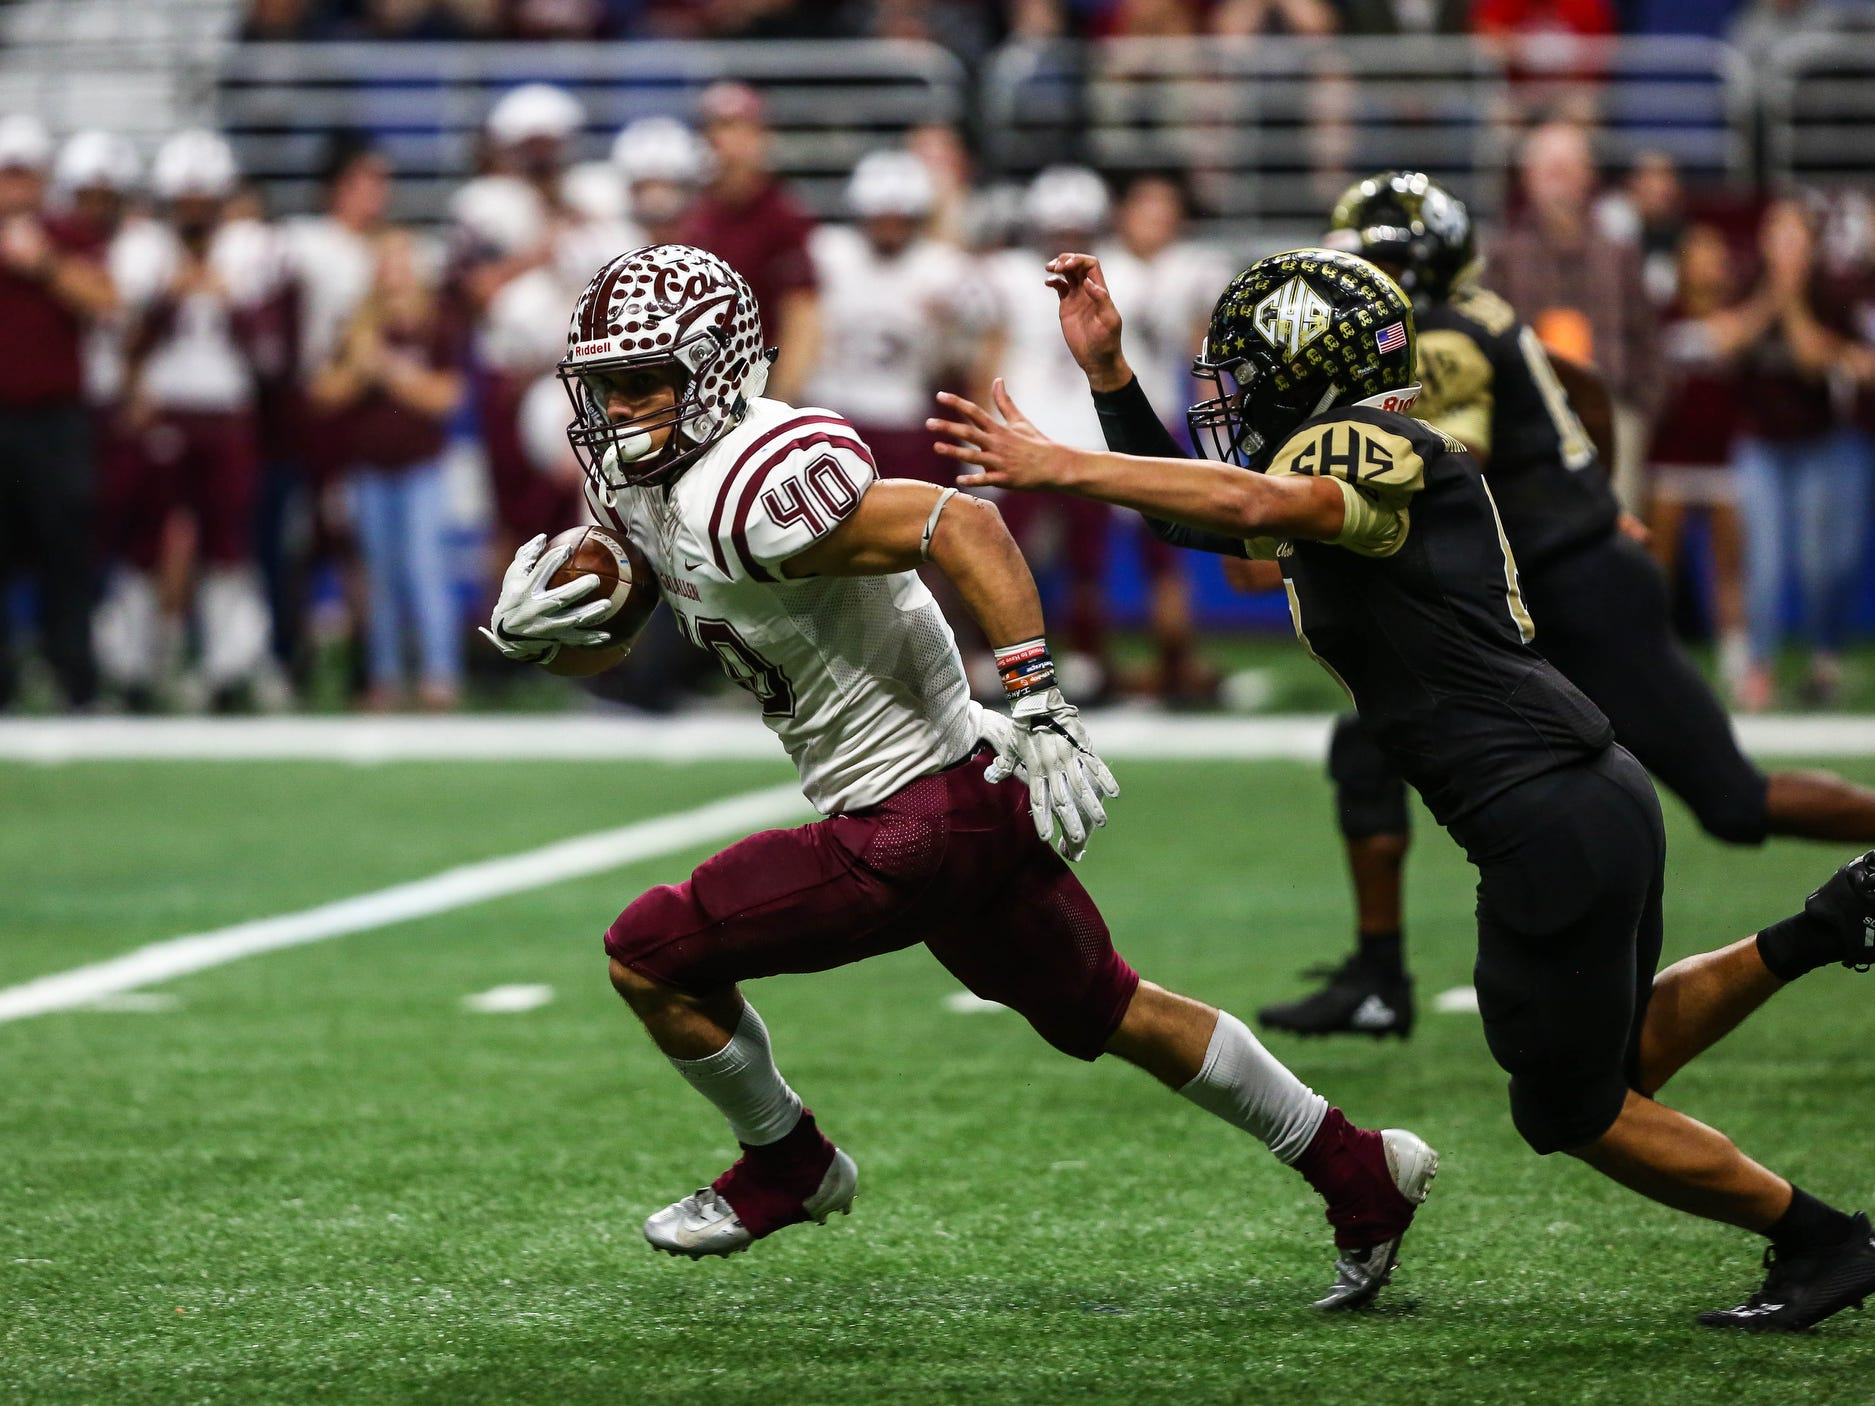 Calallen's Aj Brown runs the ball during Friday's game at the Alamodome.